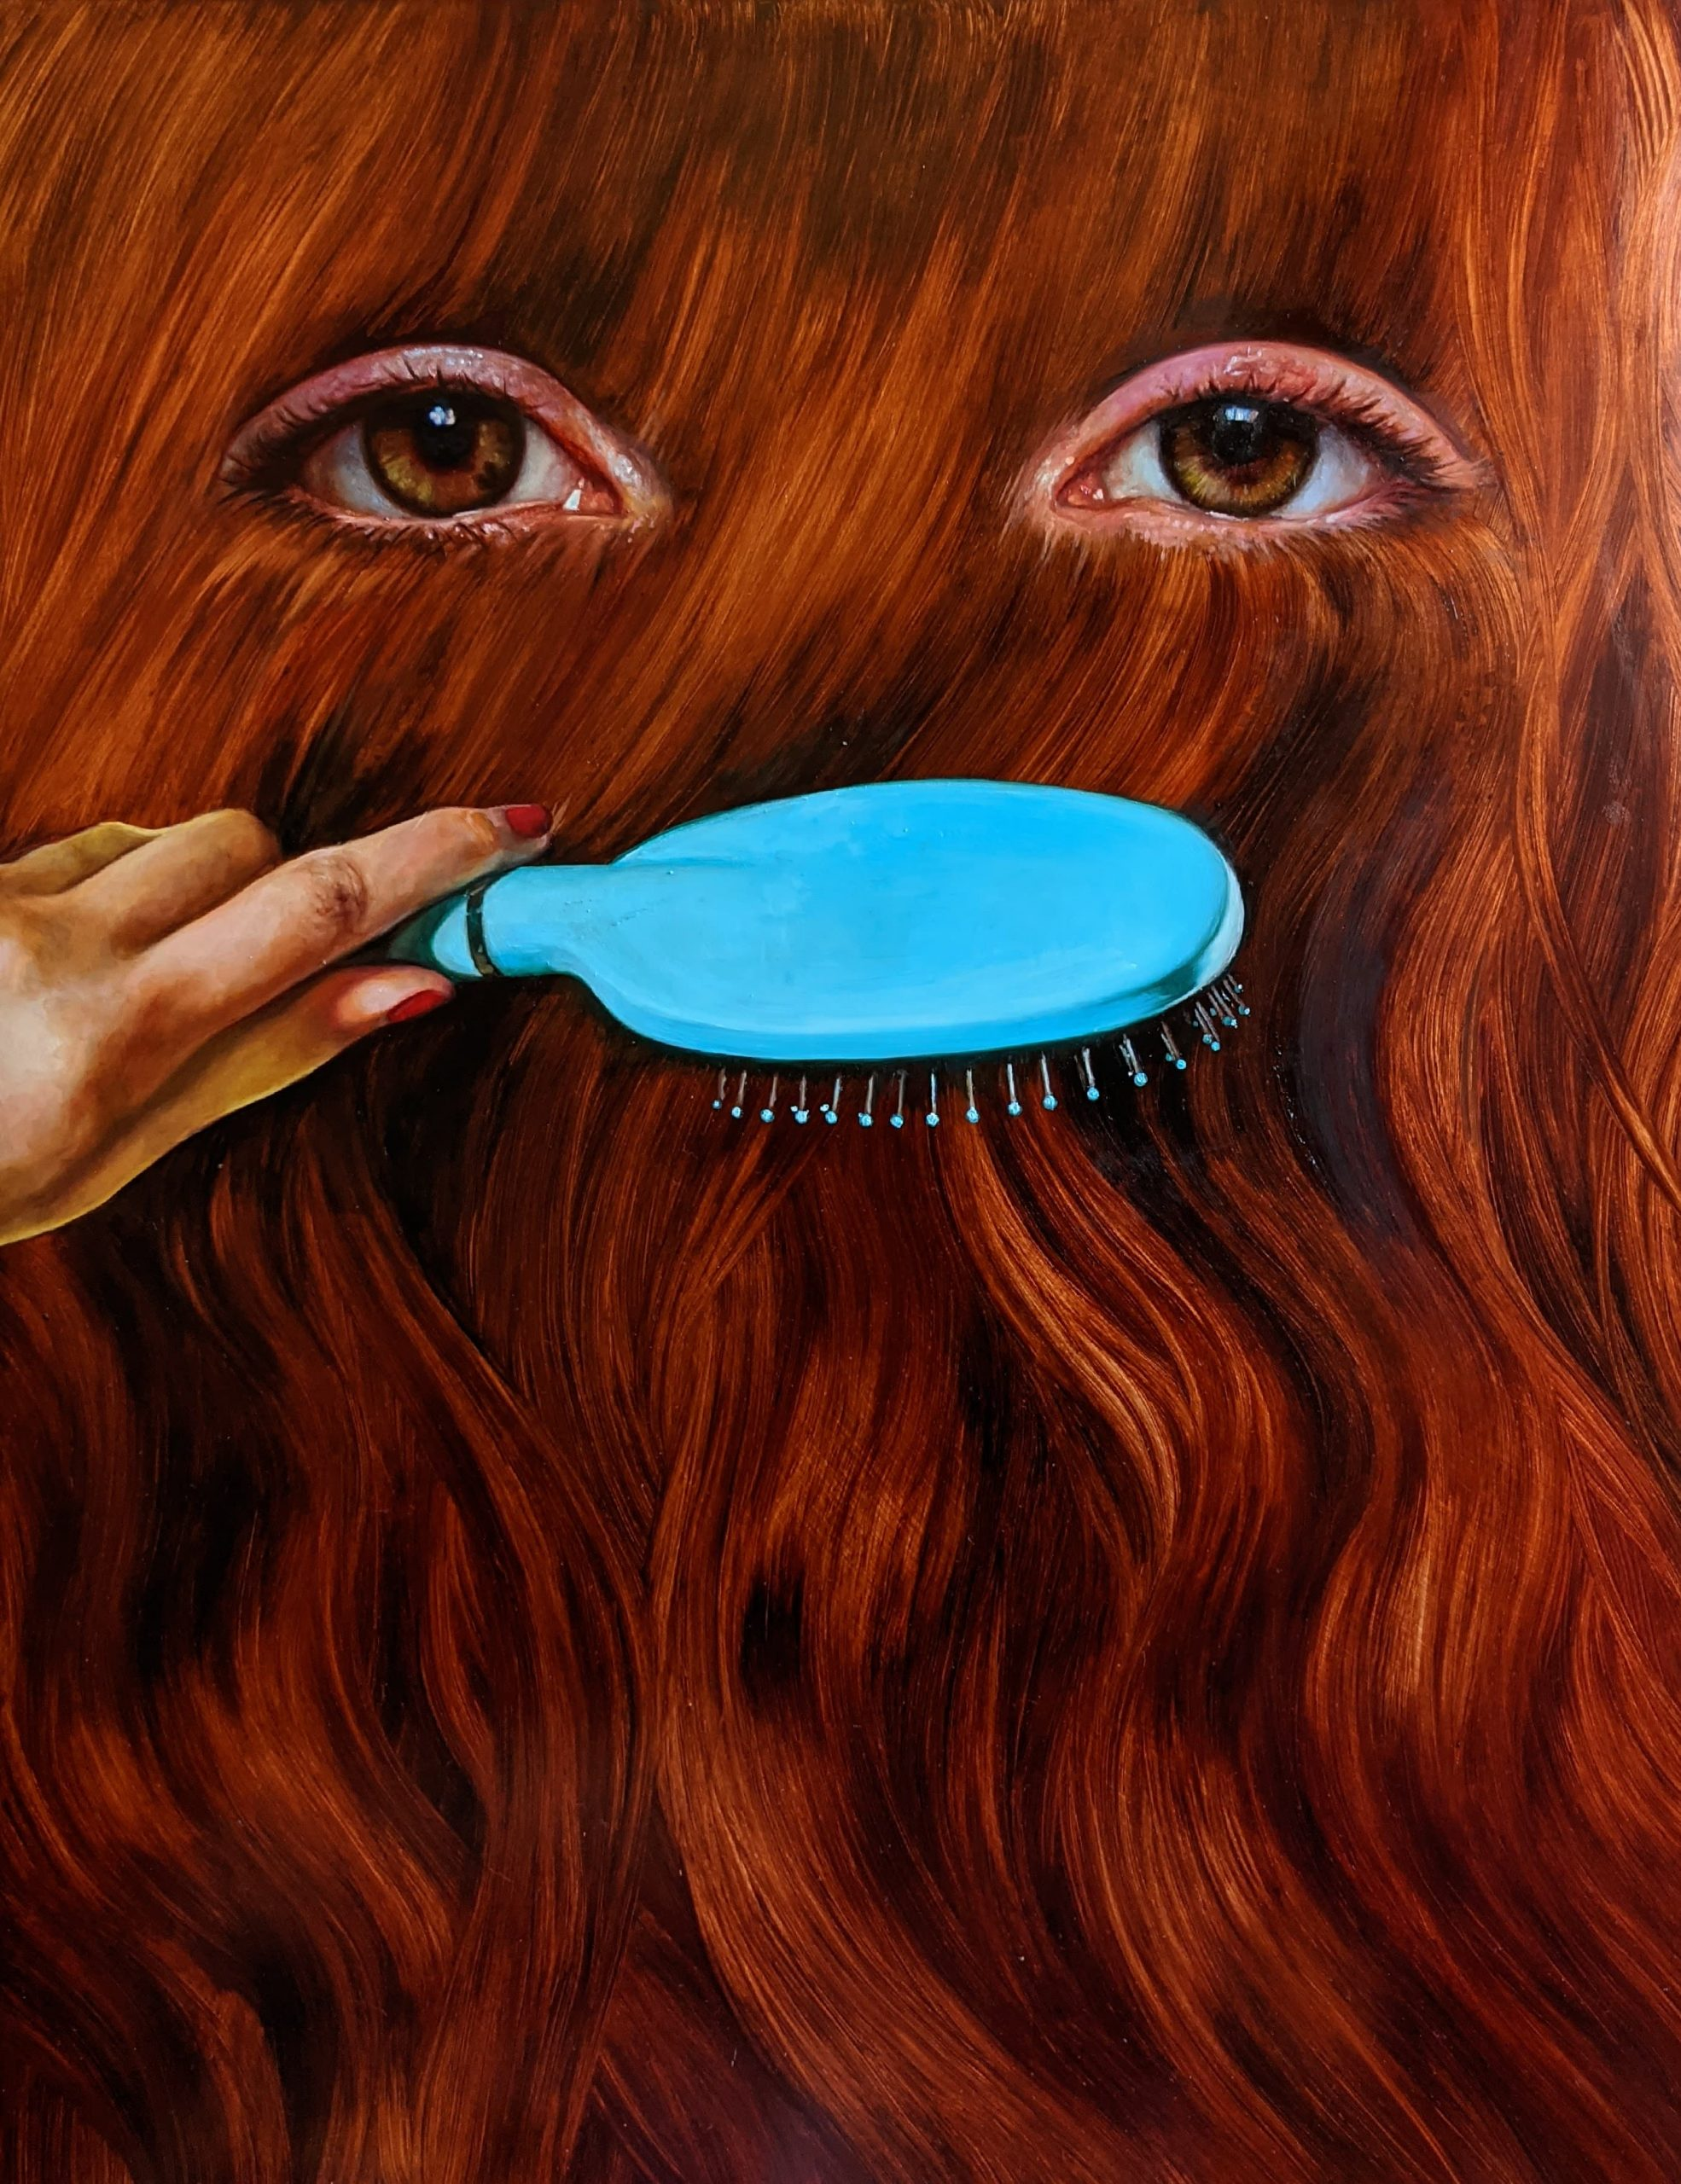 Kate Kurucz, Looking at the back of my head, oil on copper, 60 x 90cm, 2020